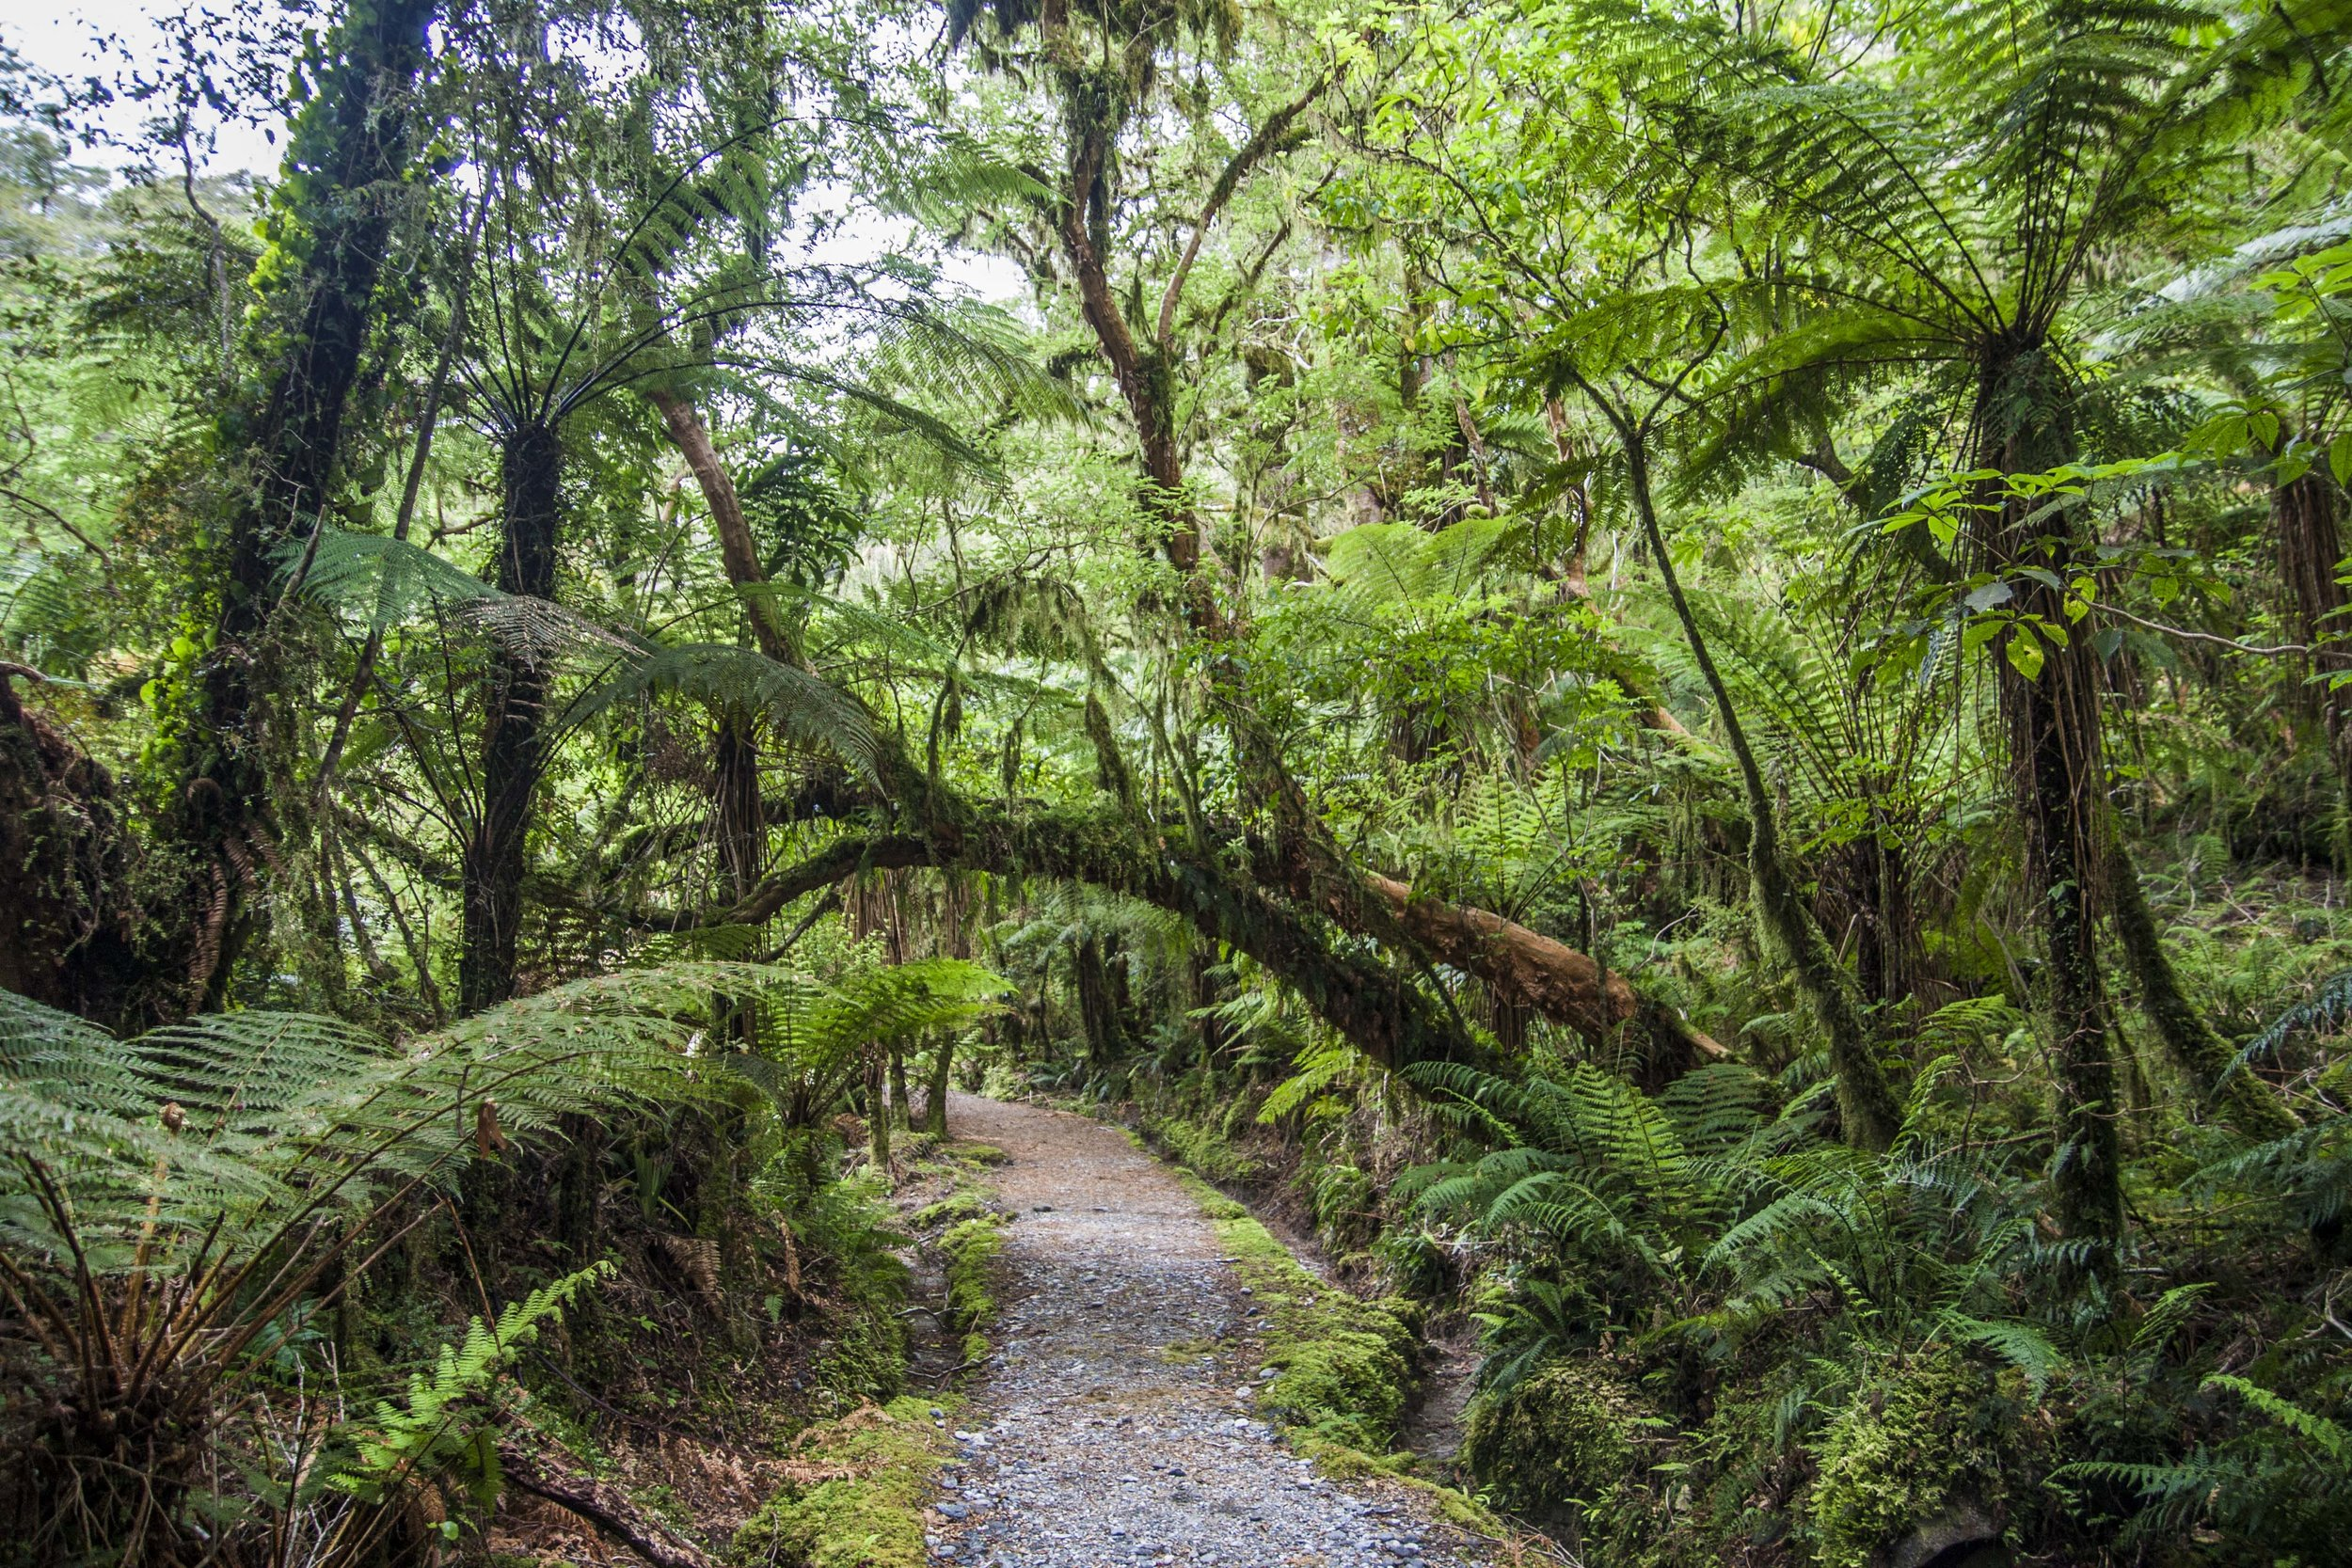 Temperate rainforest along the Milford Track in New Zealand. Introduced mammals have had significant ecological effects here and throughout the country, but the untrained eye wouldn't know it. How meaningful is that knowledge to the experience of the landscape?